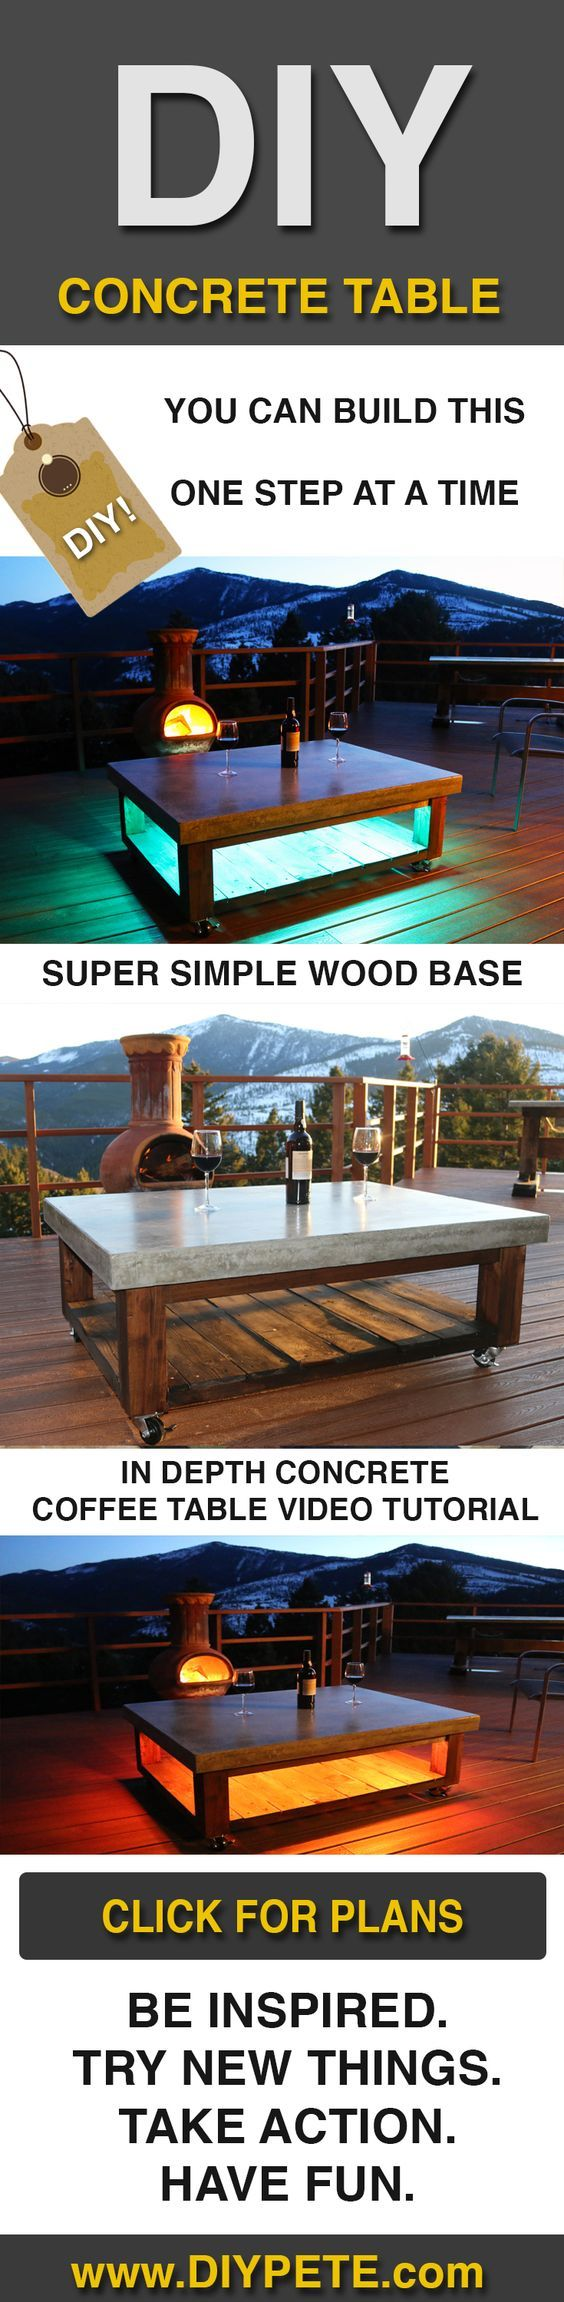 Diy simple coffee table learn how - Learn How To Make A Concrete Coffee Table For Your Patio The Base Is Simple To Build And The Concrete Table Top Will Look Amazing